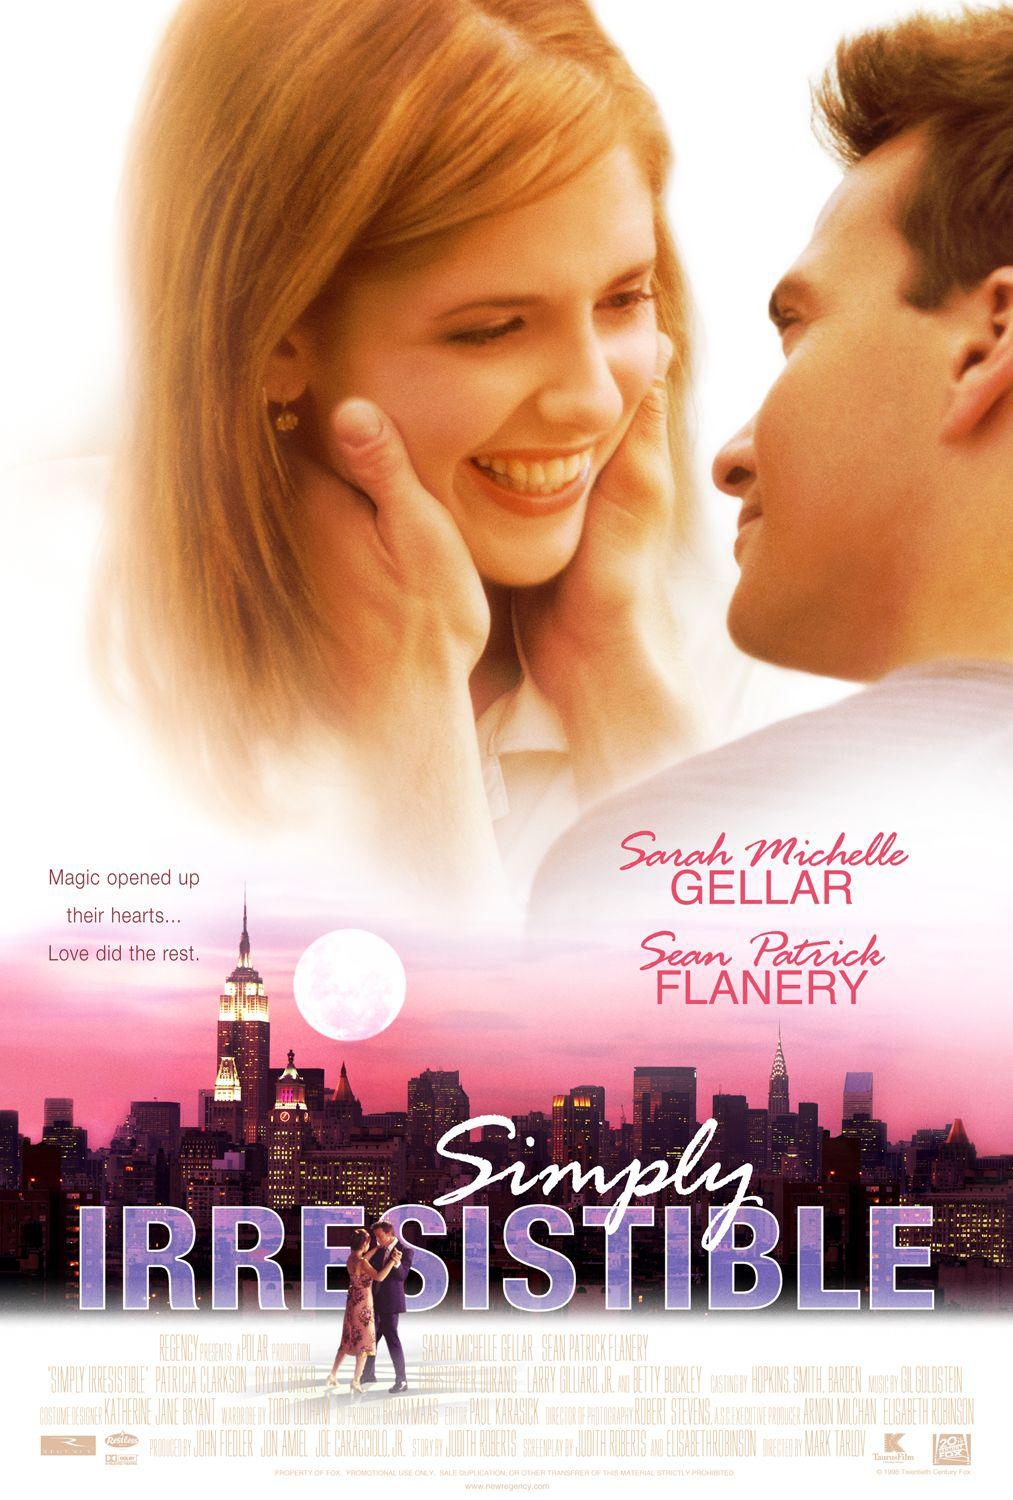 Simply irresistible - Sarah Michelle Gellar - Sean Patrick Flanery - Magic opened up their hearts. Love did the rest.